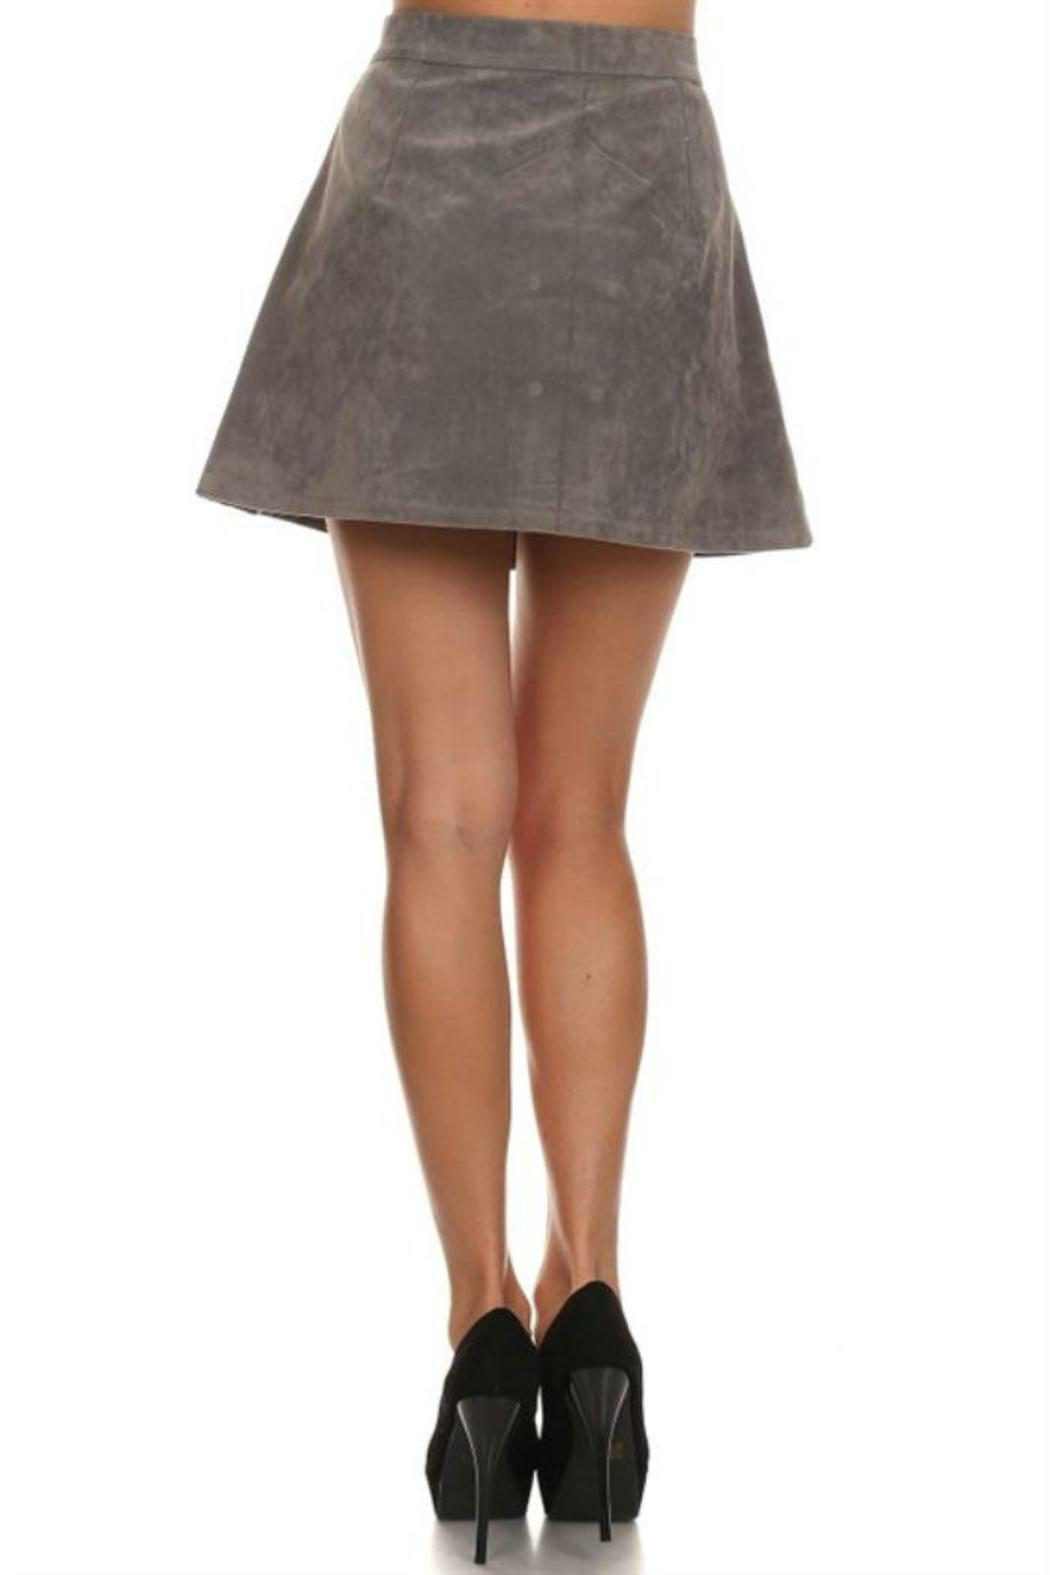 36 POINT 5 Grey Faux-Suede Skirt from Wilmington by The Dress Shop ...